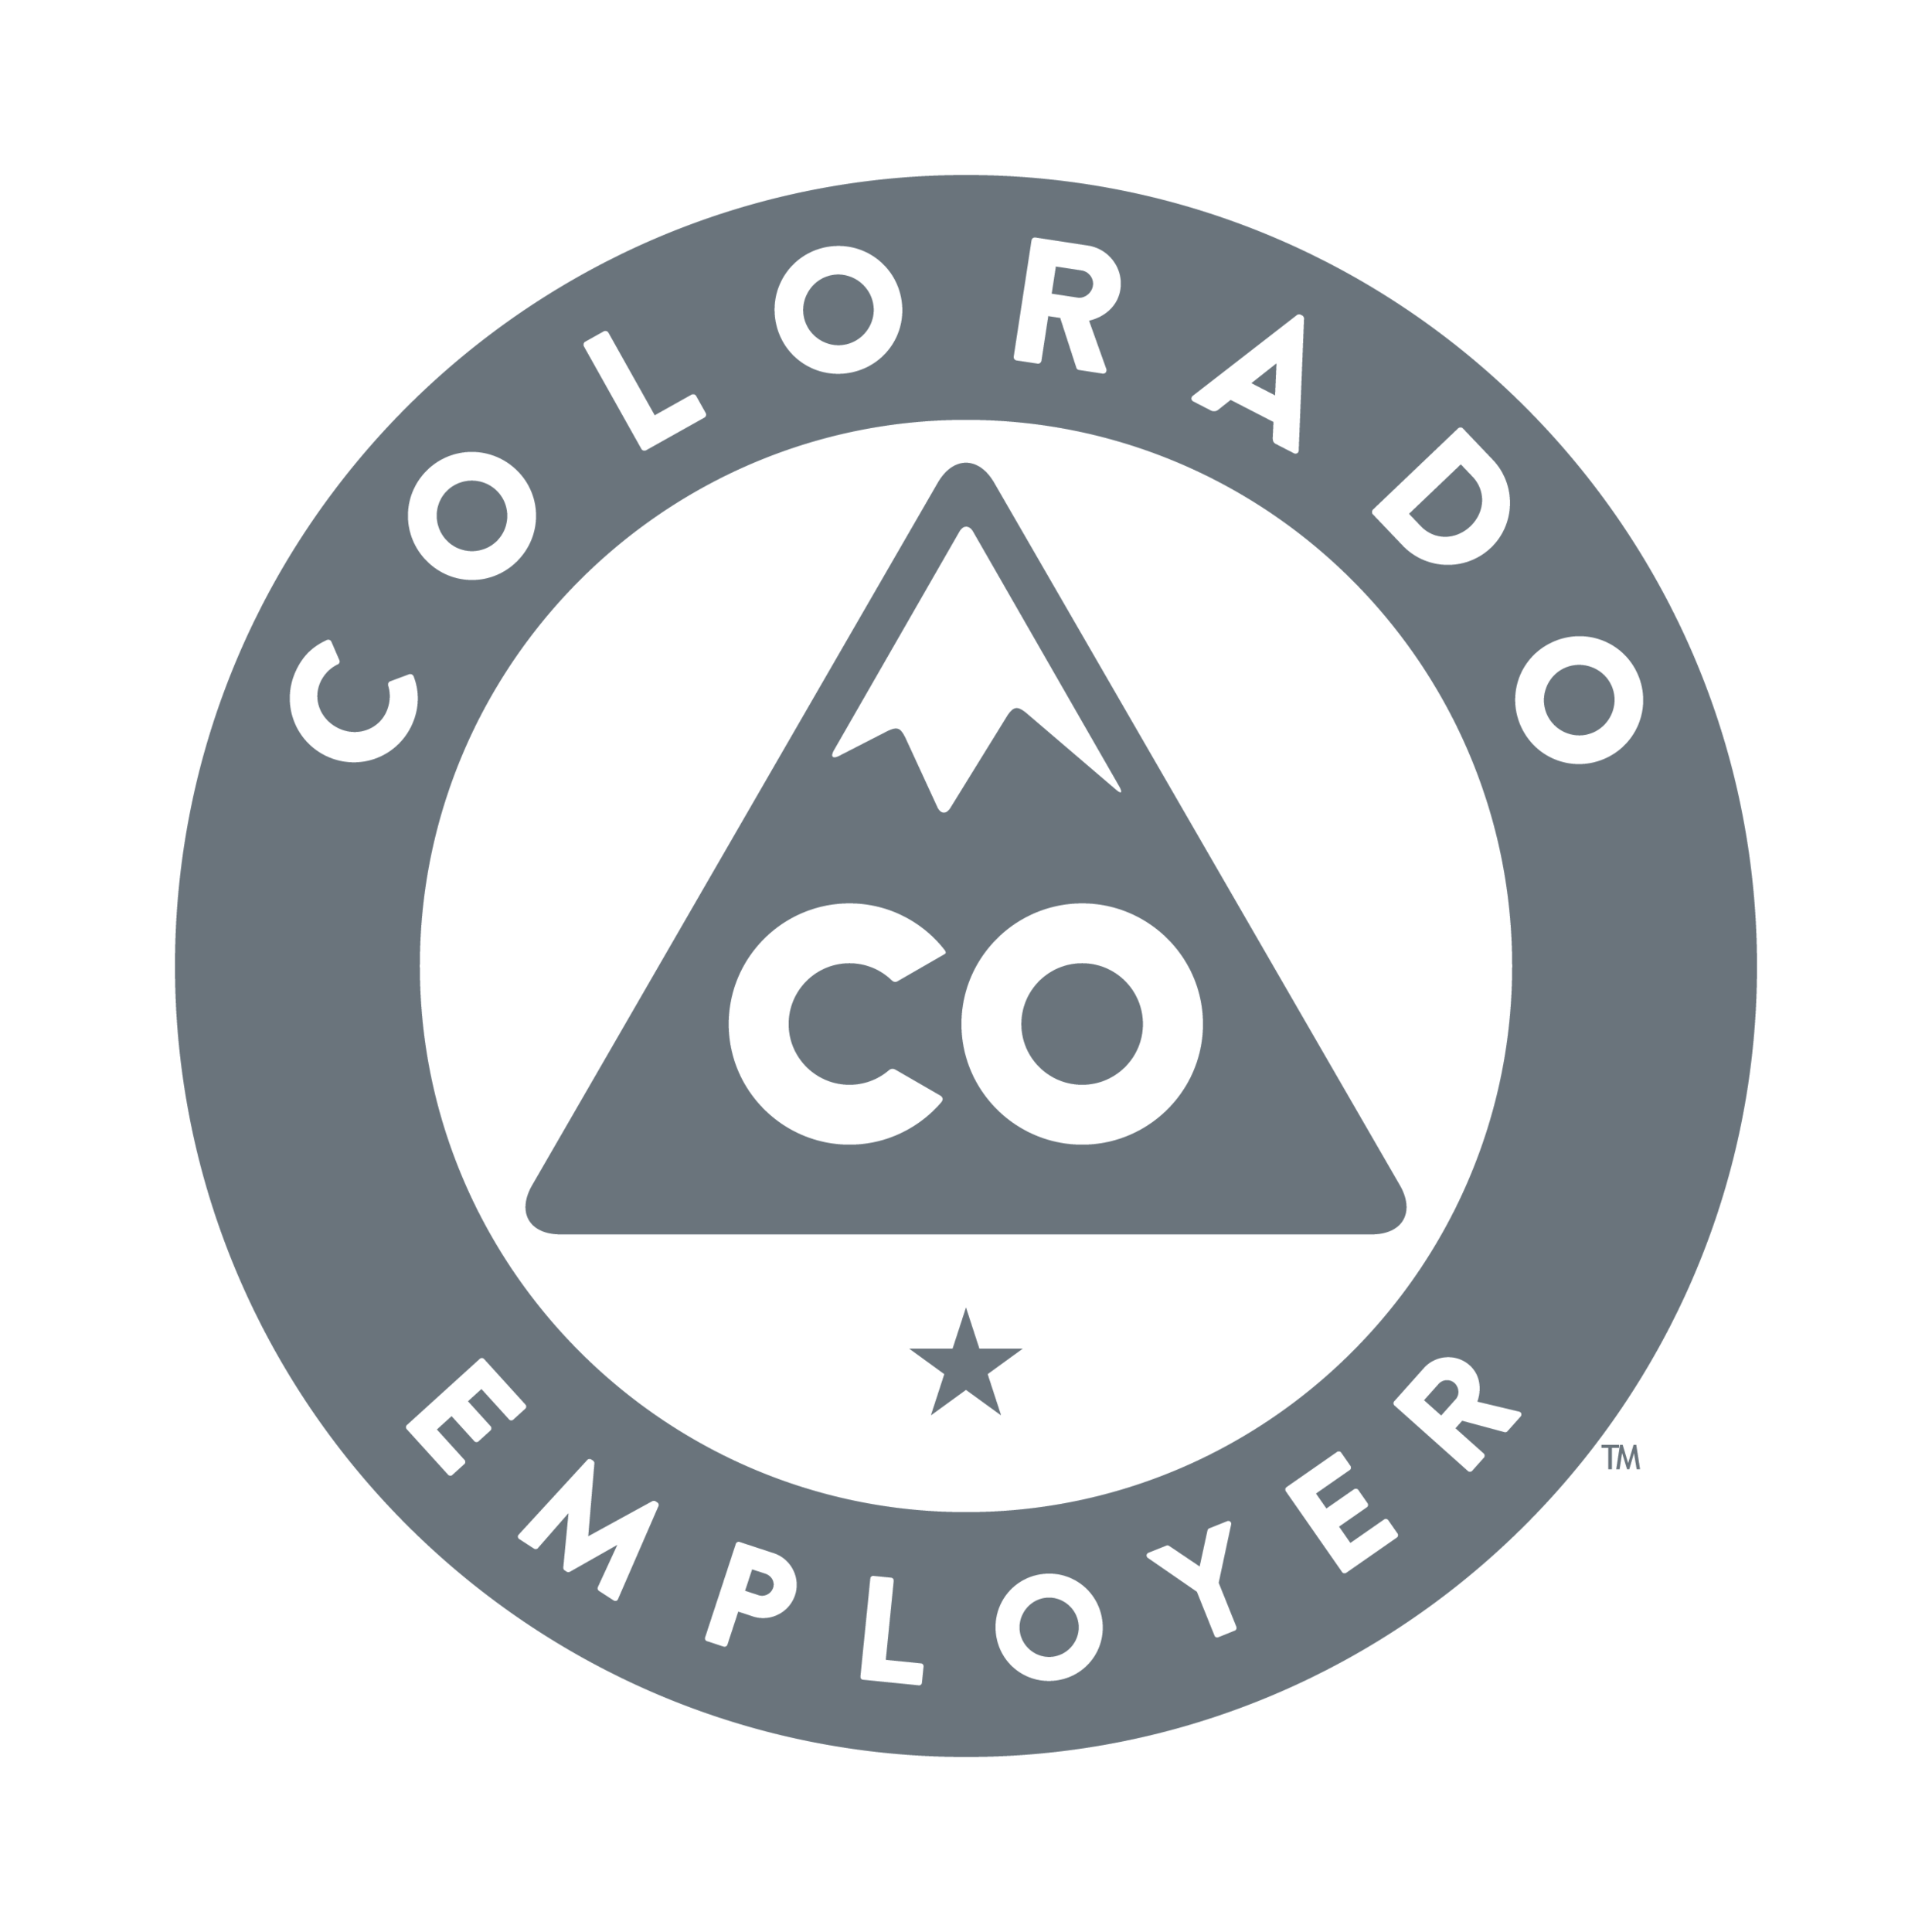 CO_Employer_1star_Color.png